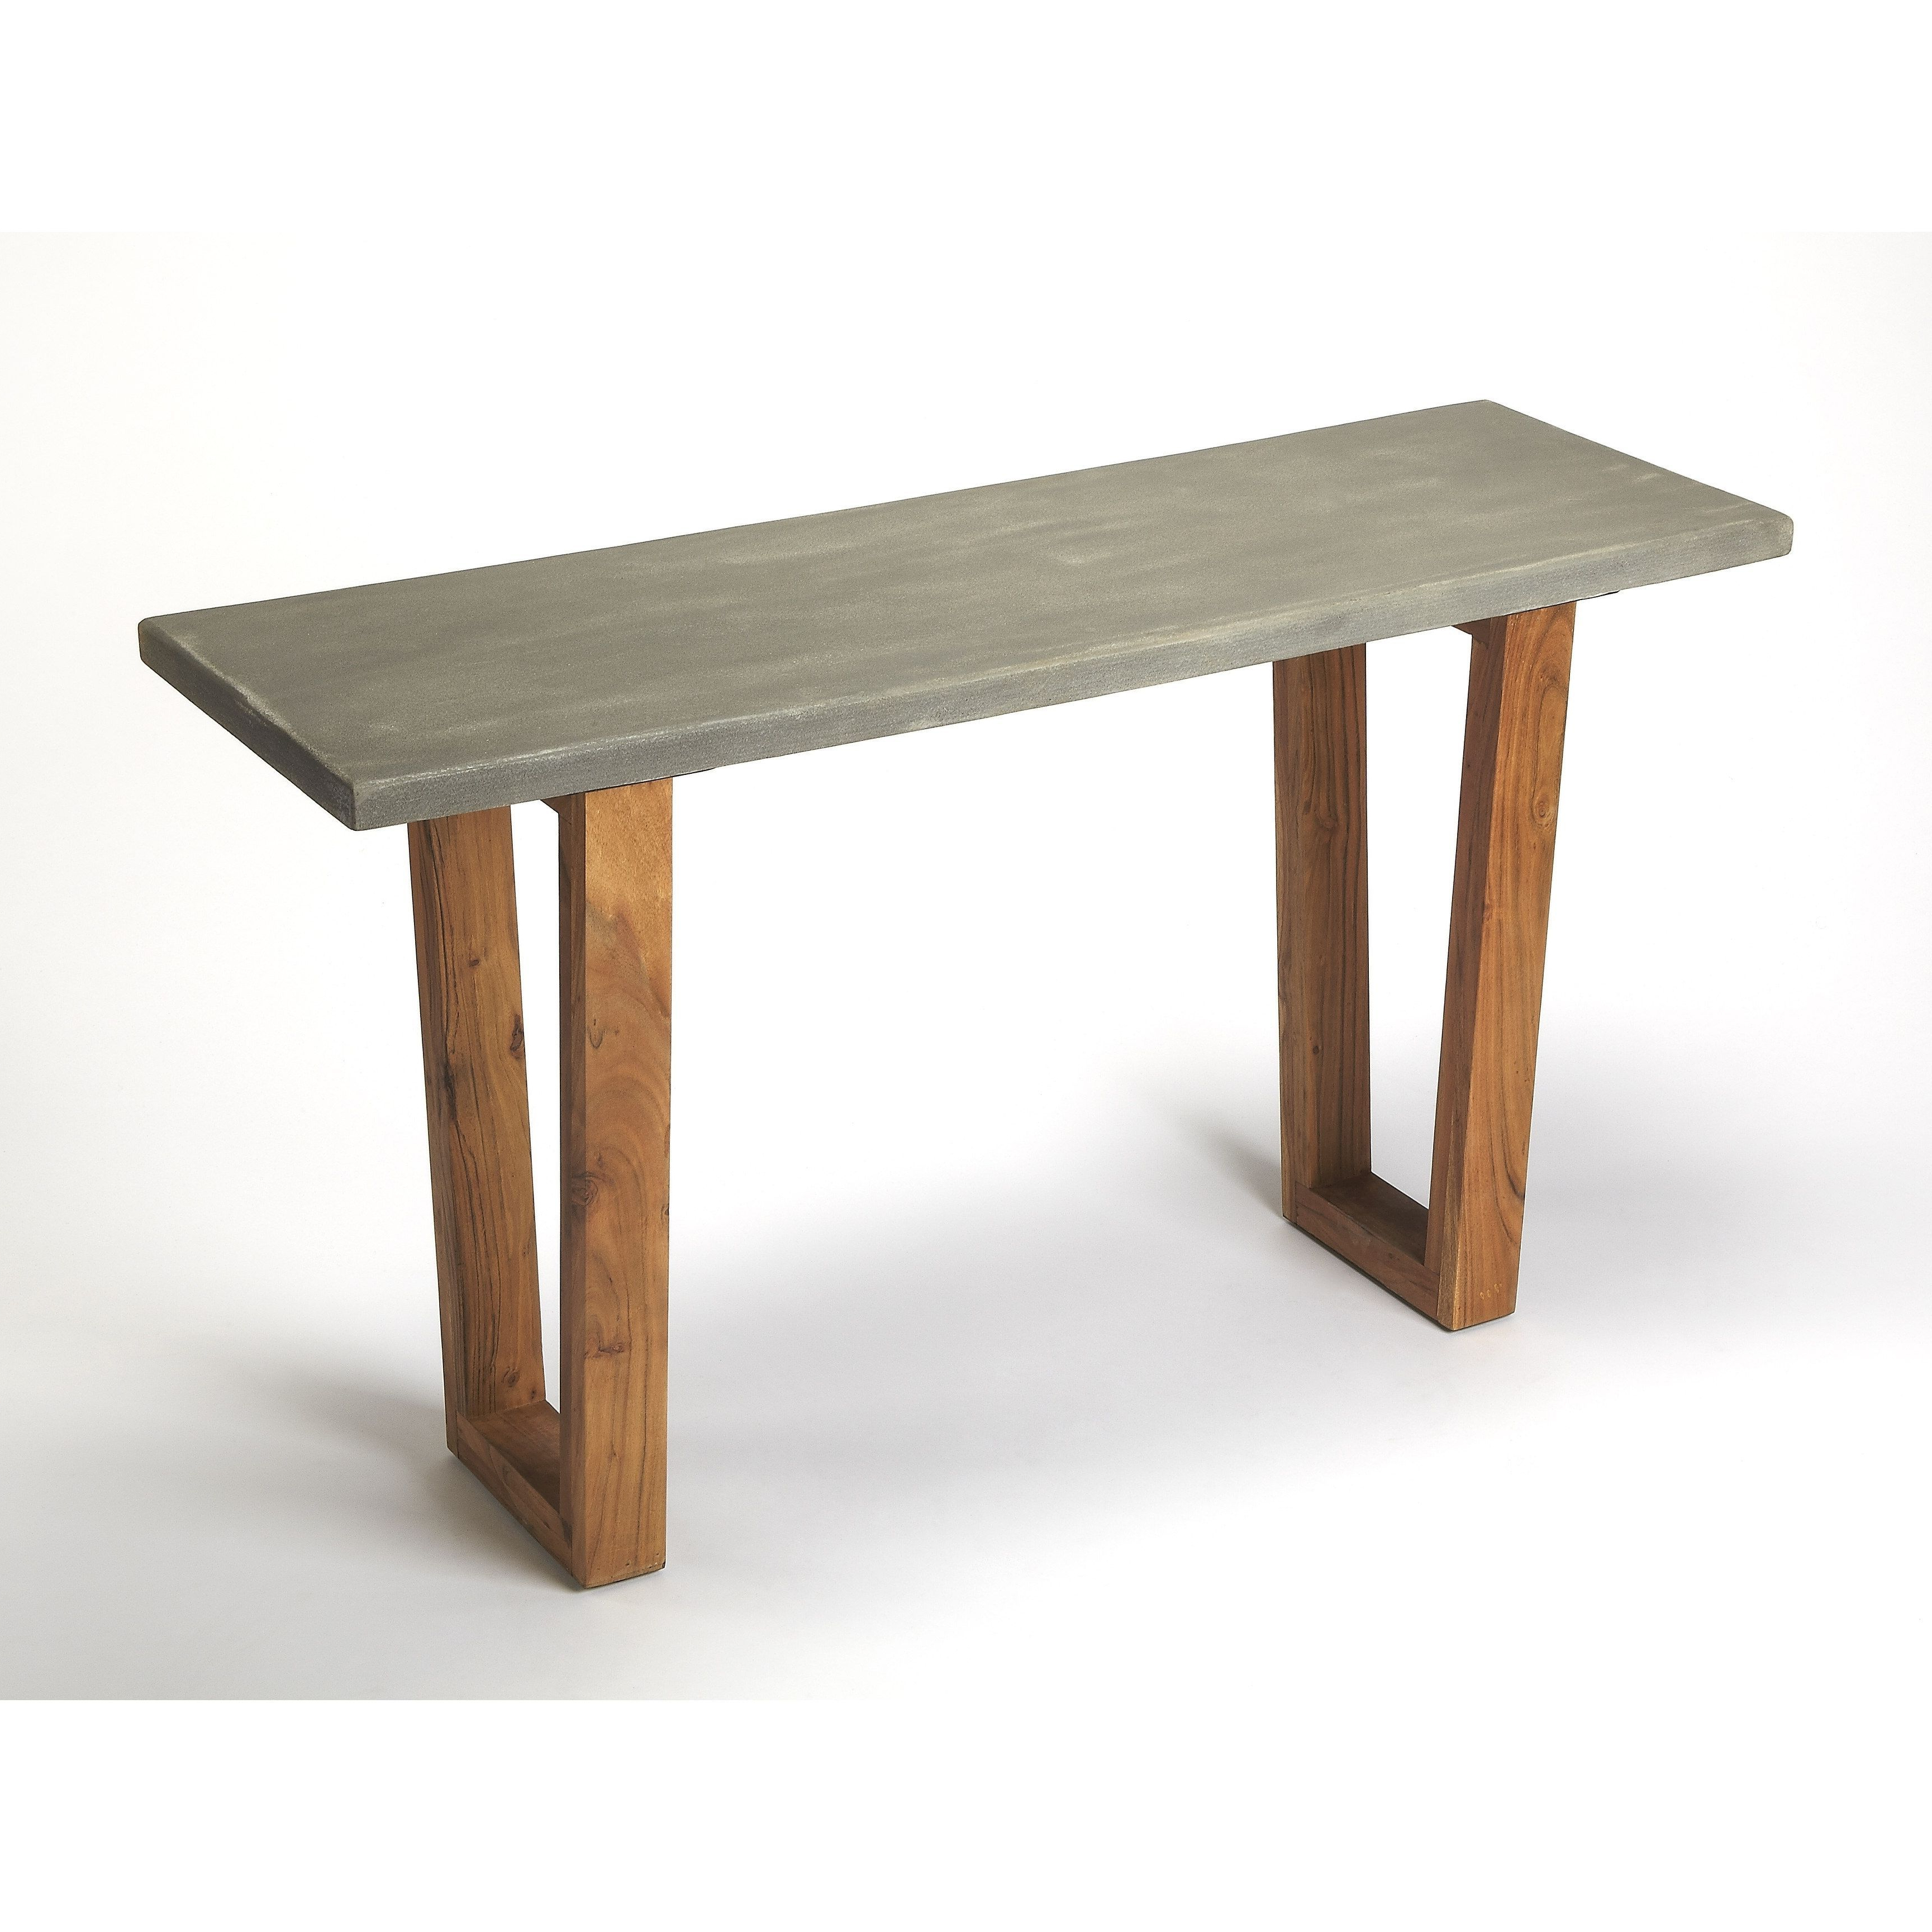 Butler Massey Concrete & Wood Console Table, Multi | Products Inside Yukon Natural Console Tables (Gallery 16 of 20)